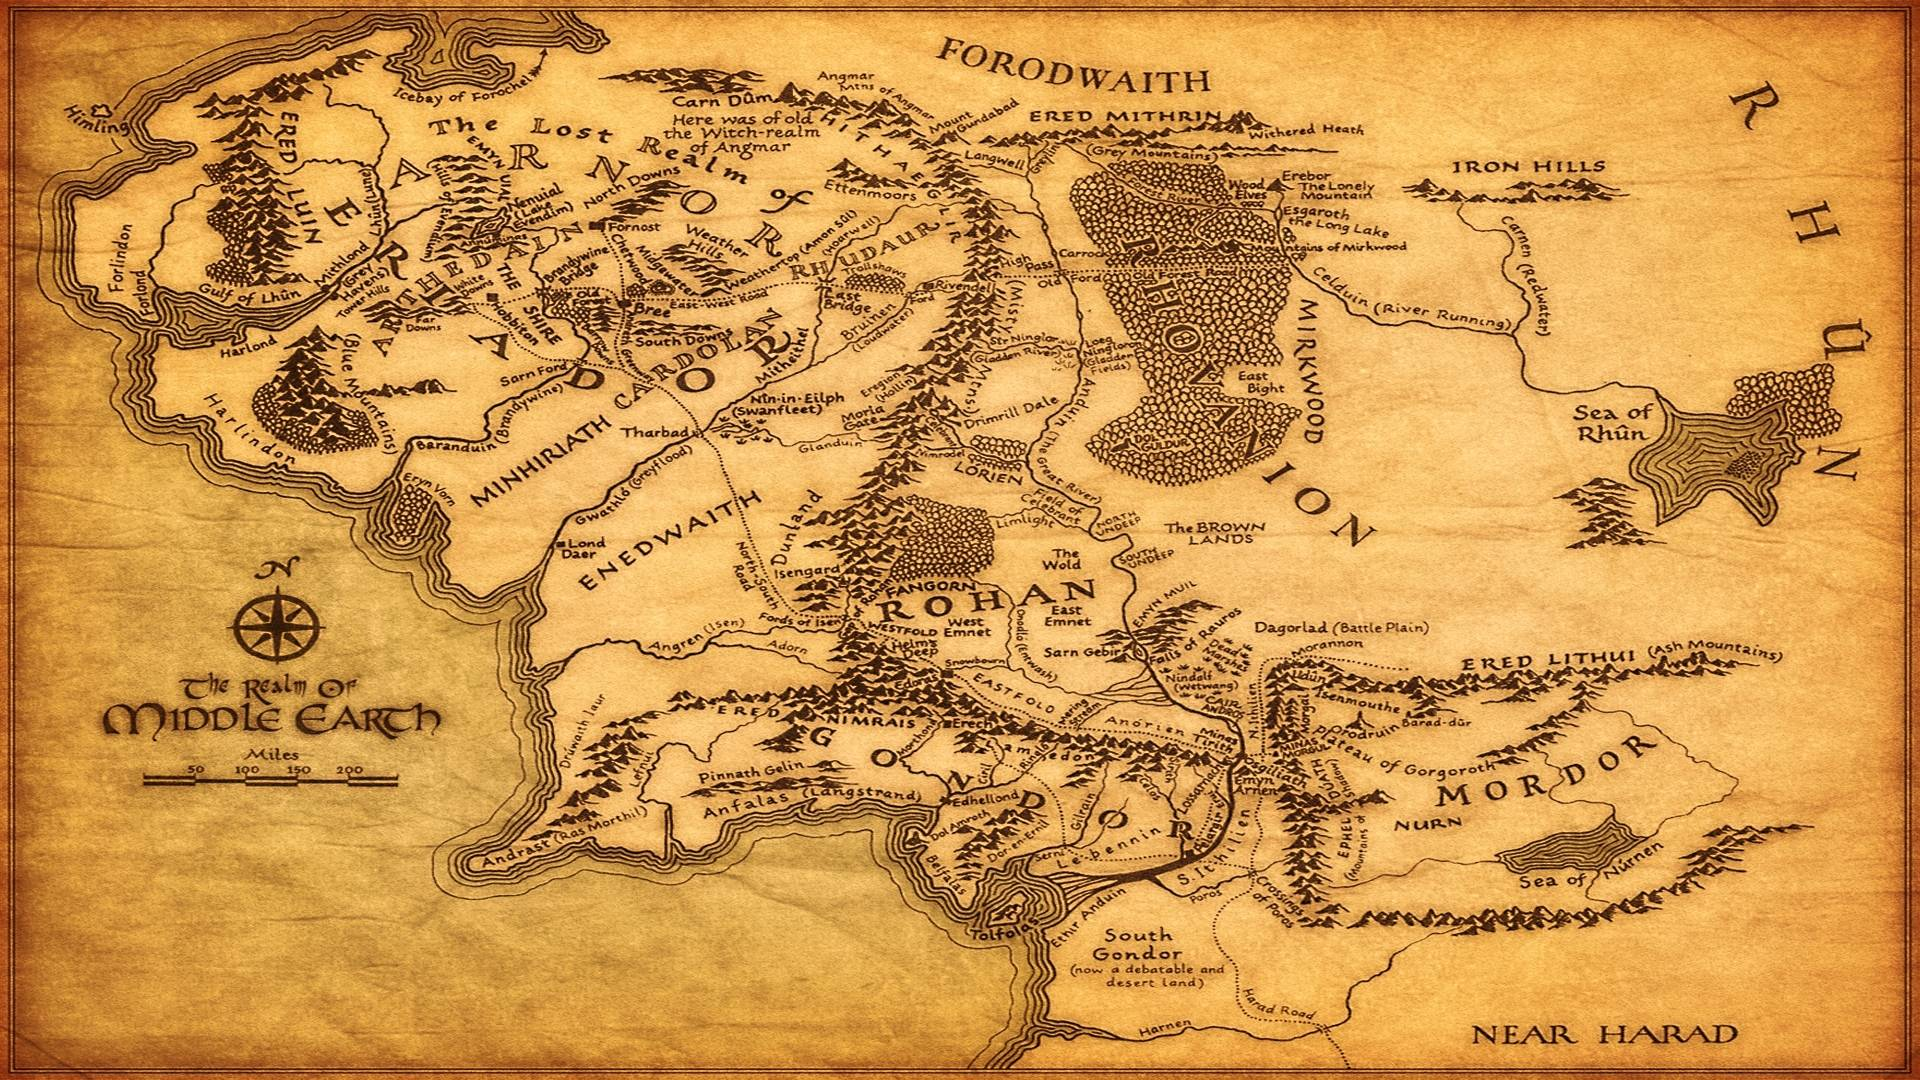 Middle Earth Map Image Hd Wallpapers 1680x1050PX ~ Wallpapers